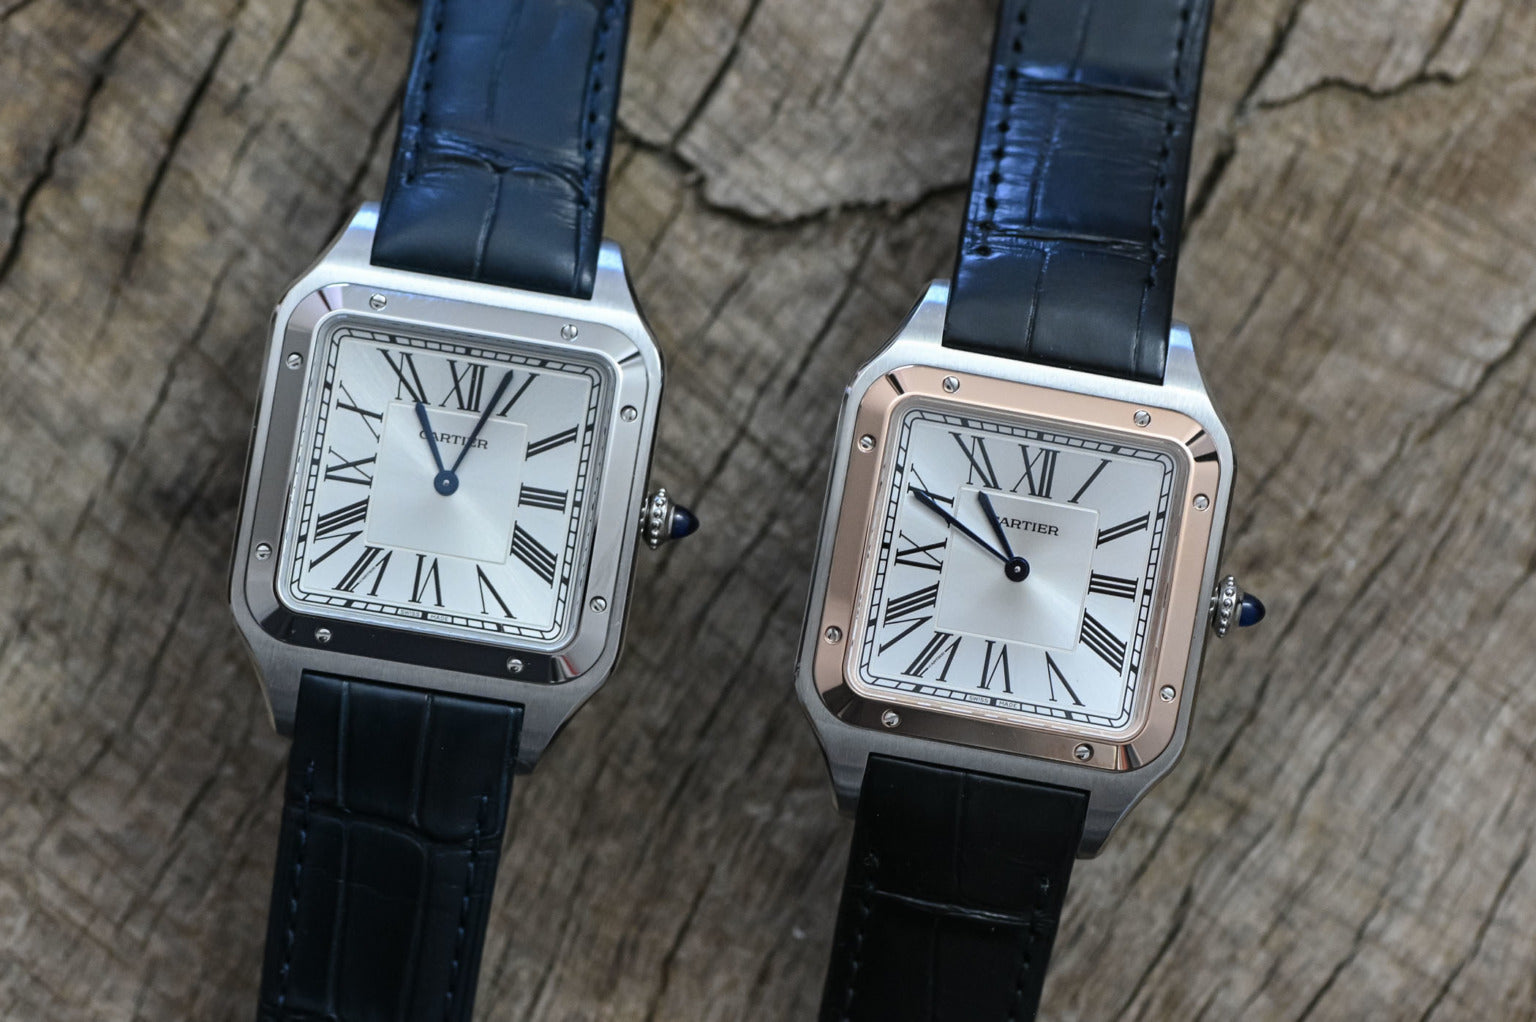 cartier santos watch in two iterations